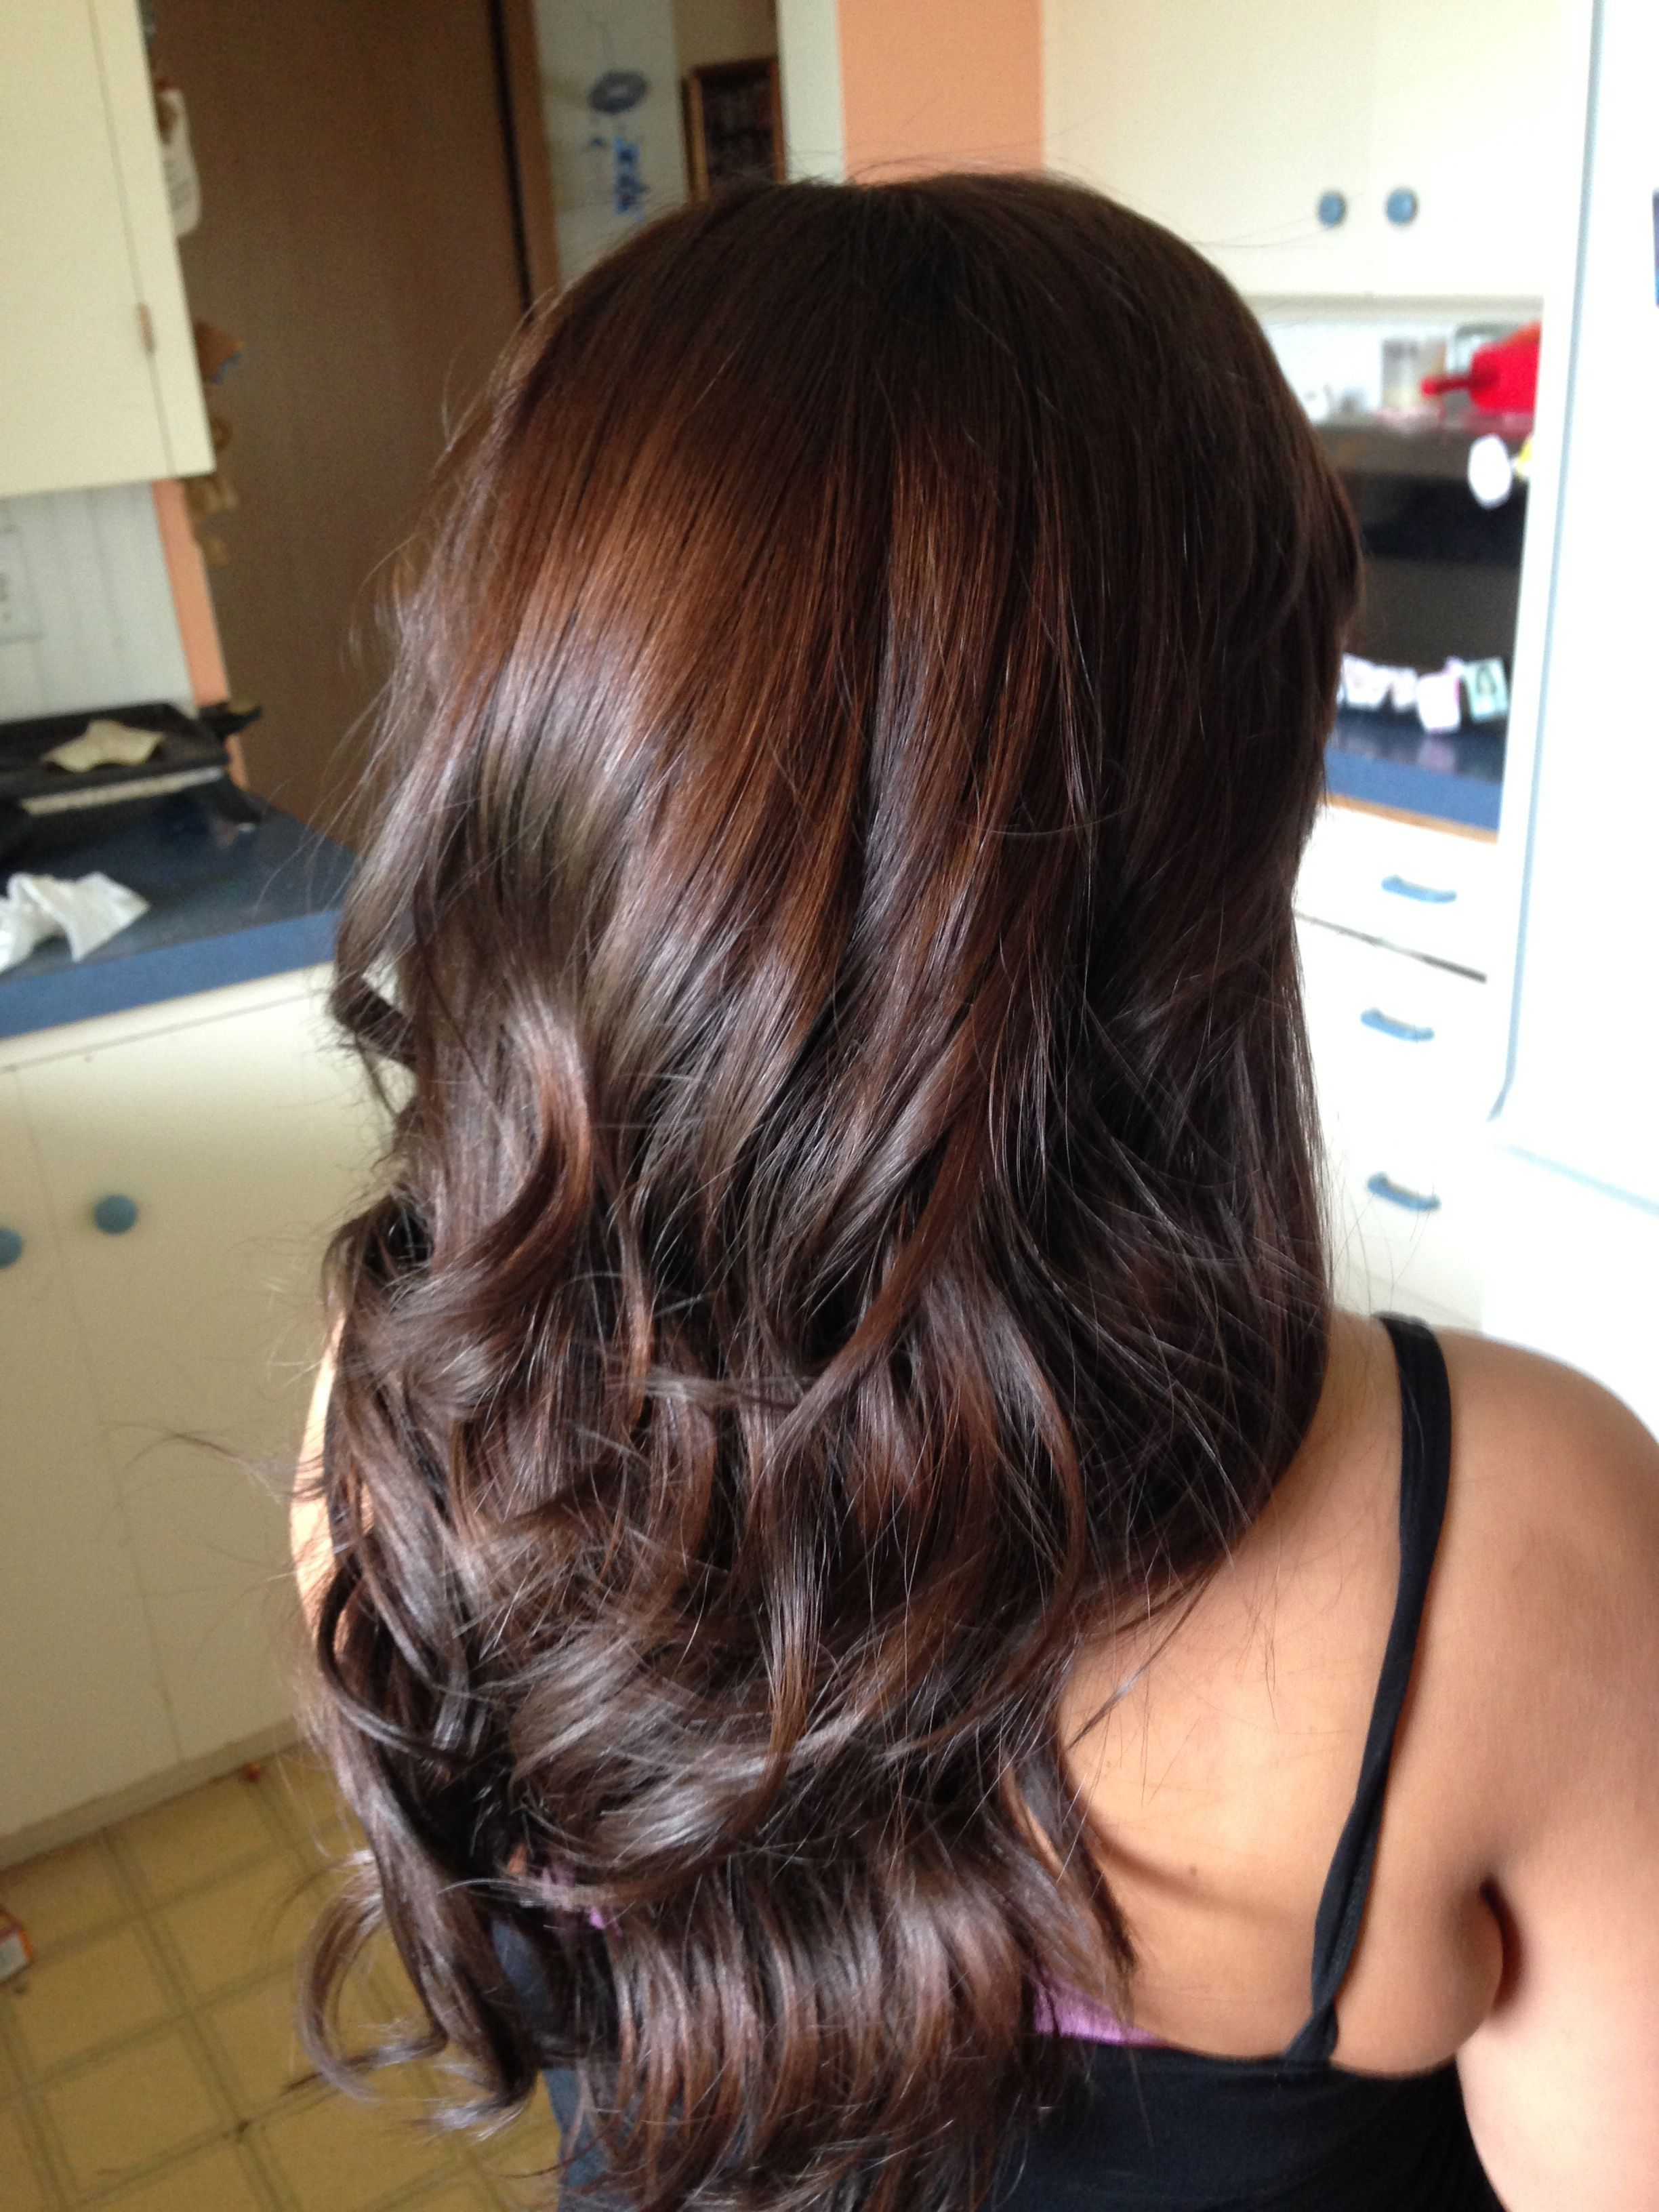 Long Layers Amp Dark Brown With Red Tint So Pretty